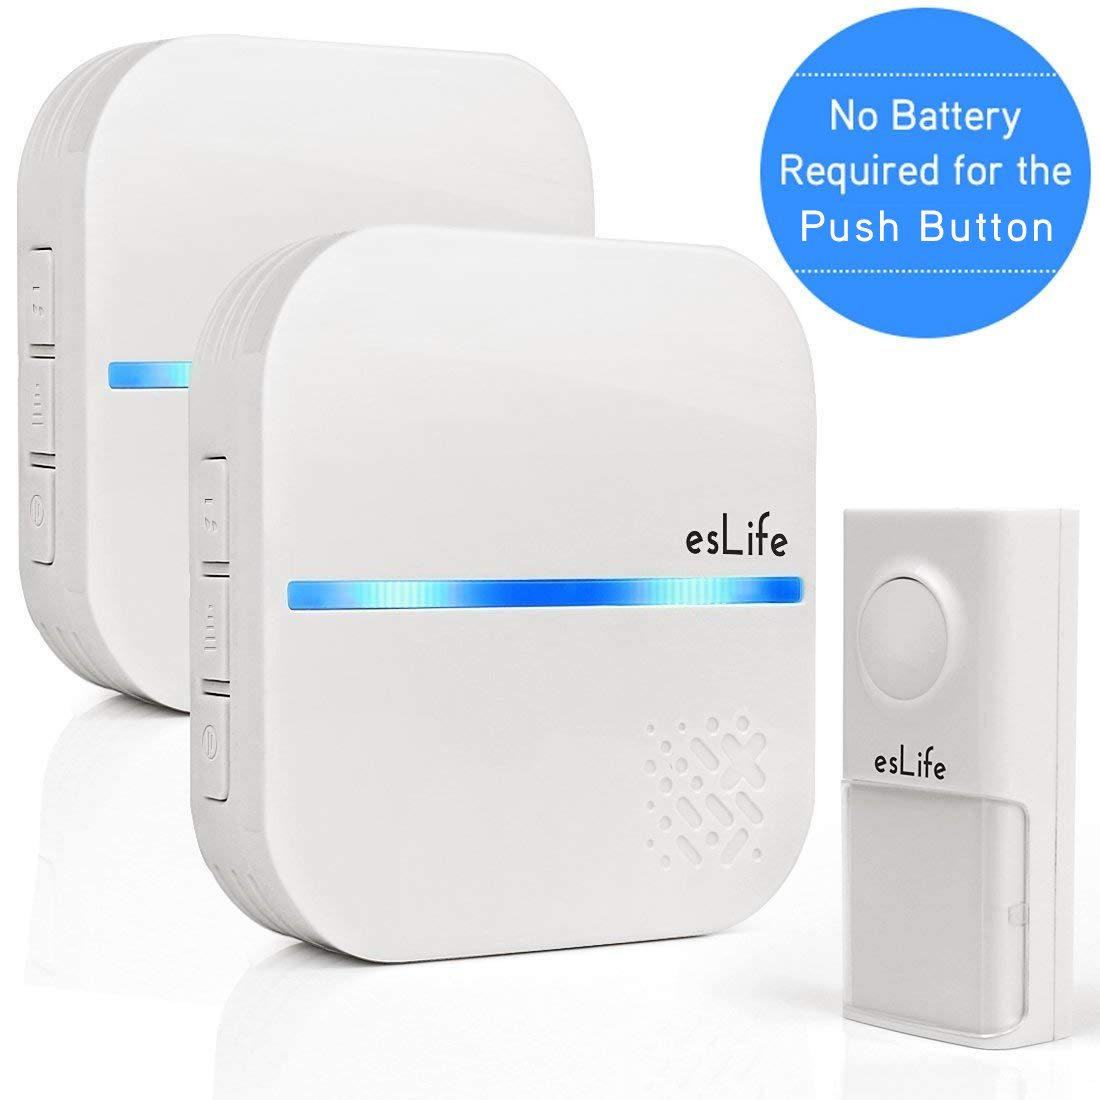 No Battery Required Wireless Doorbell, 1 Push Button(Self-Generating